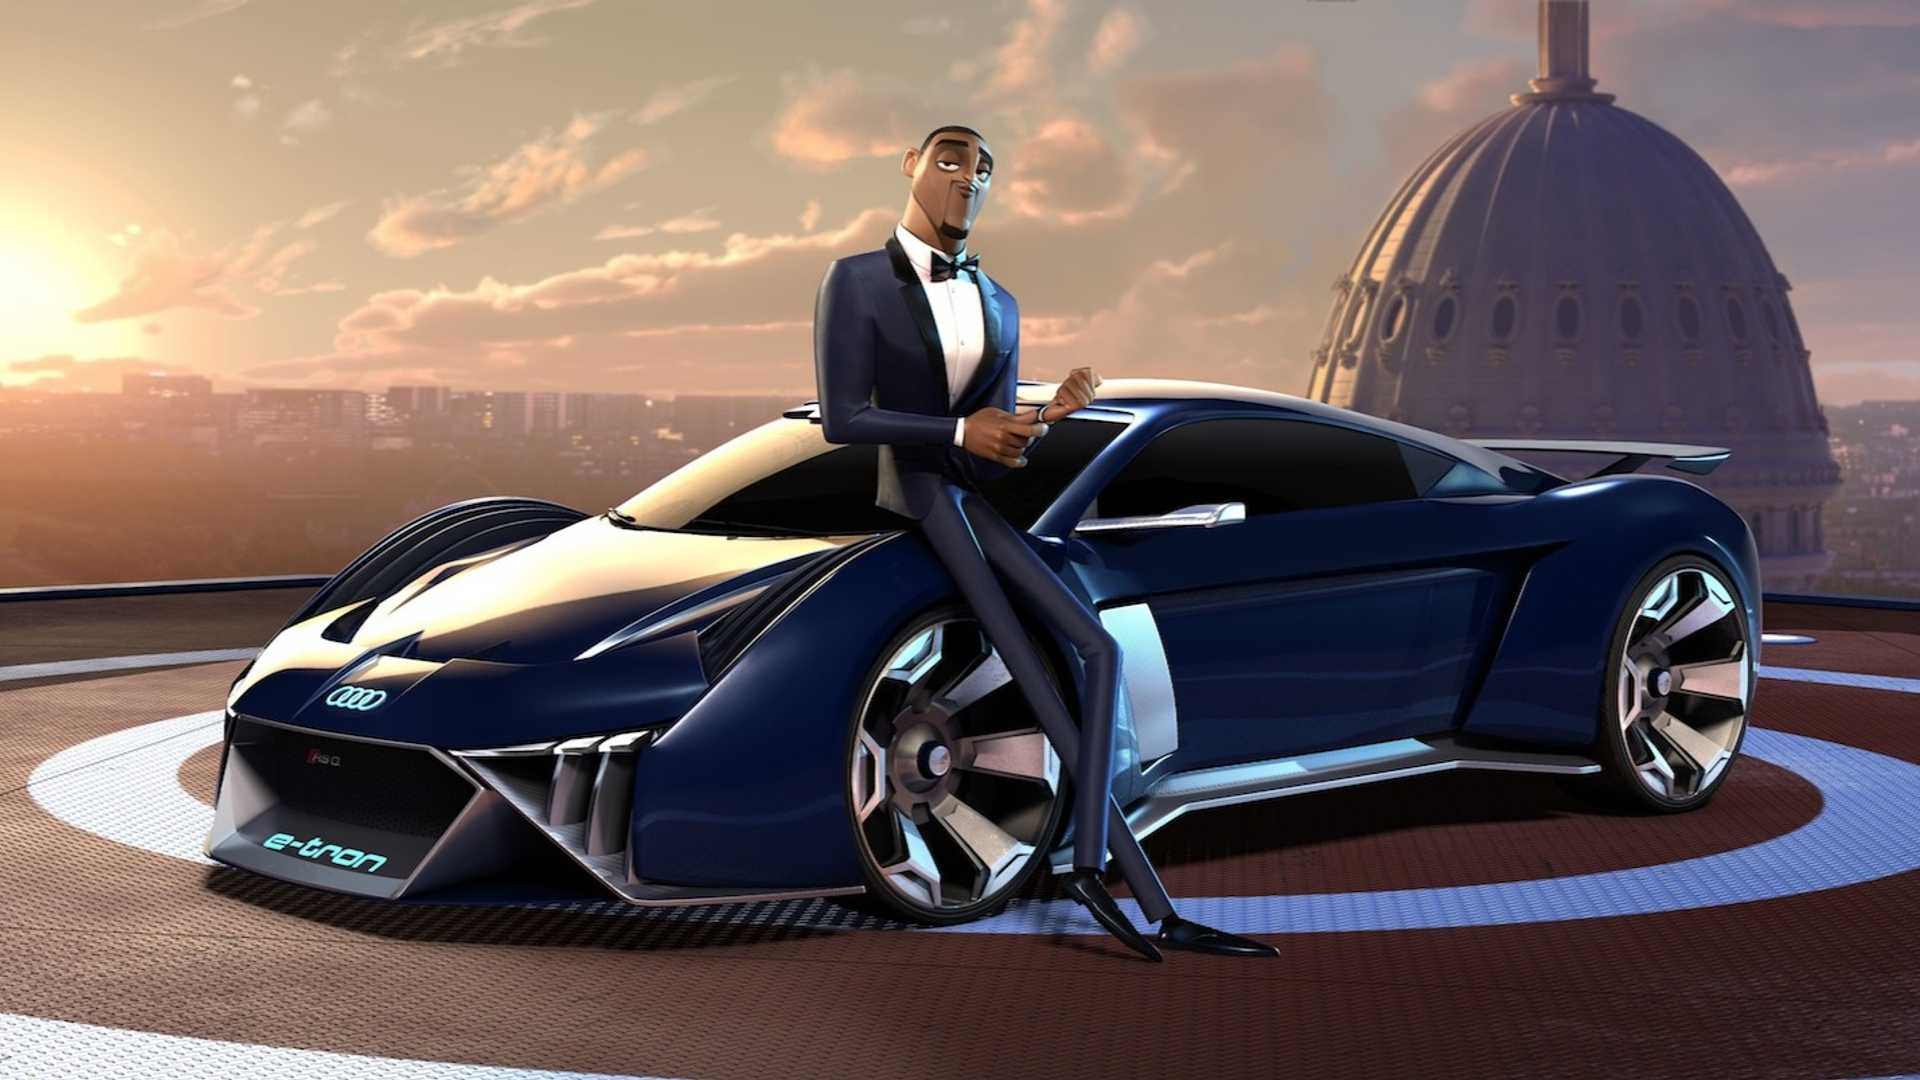 Audi Partners with Will Smith Again to Show Off RSQ e-tron